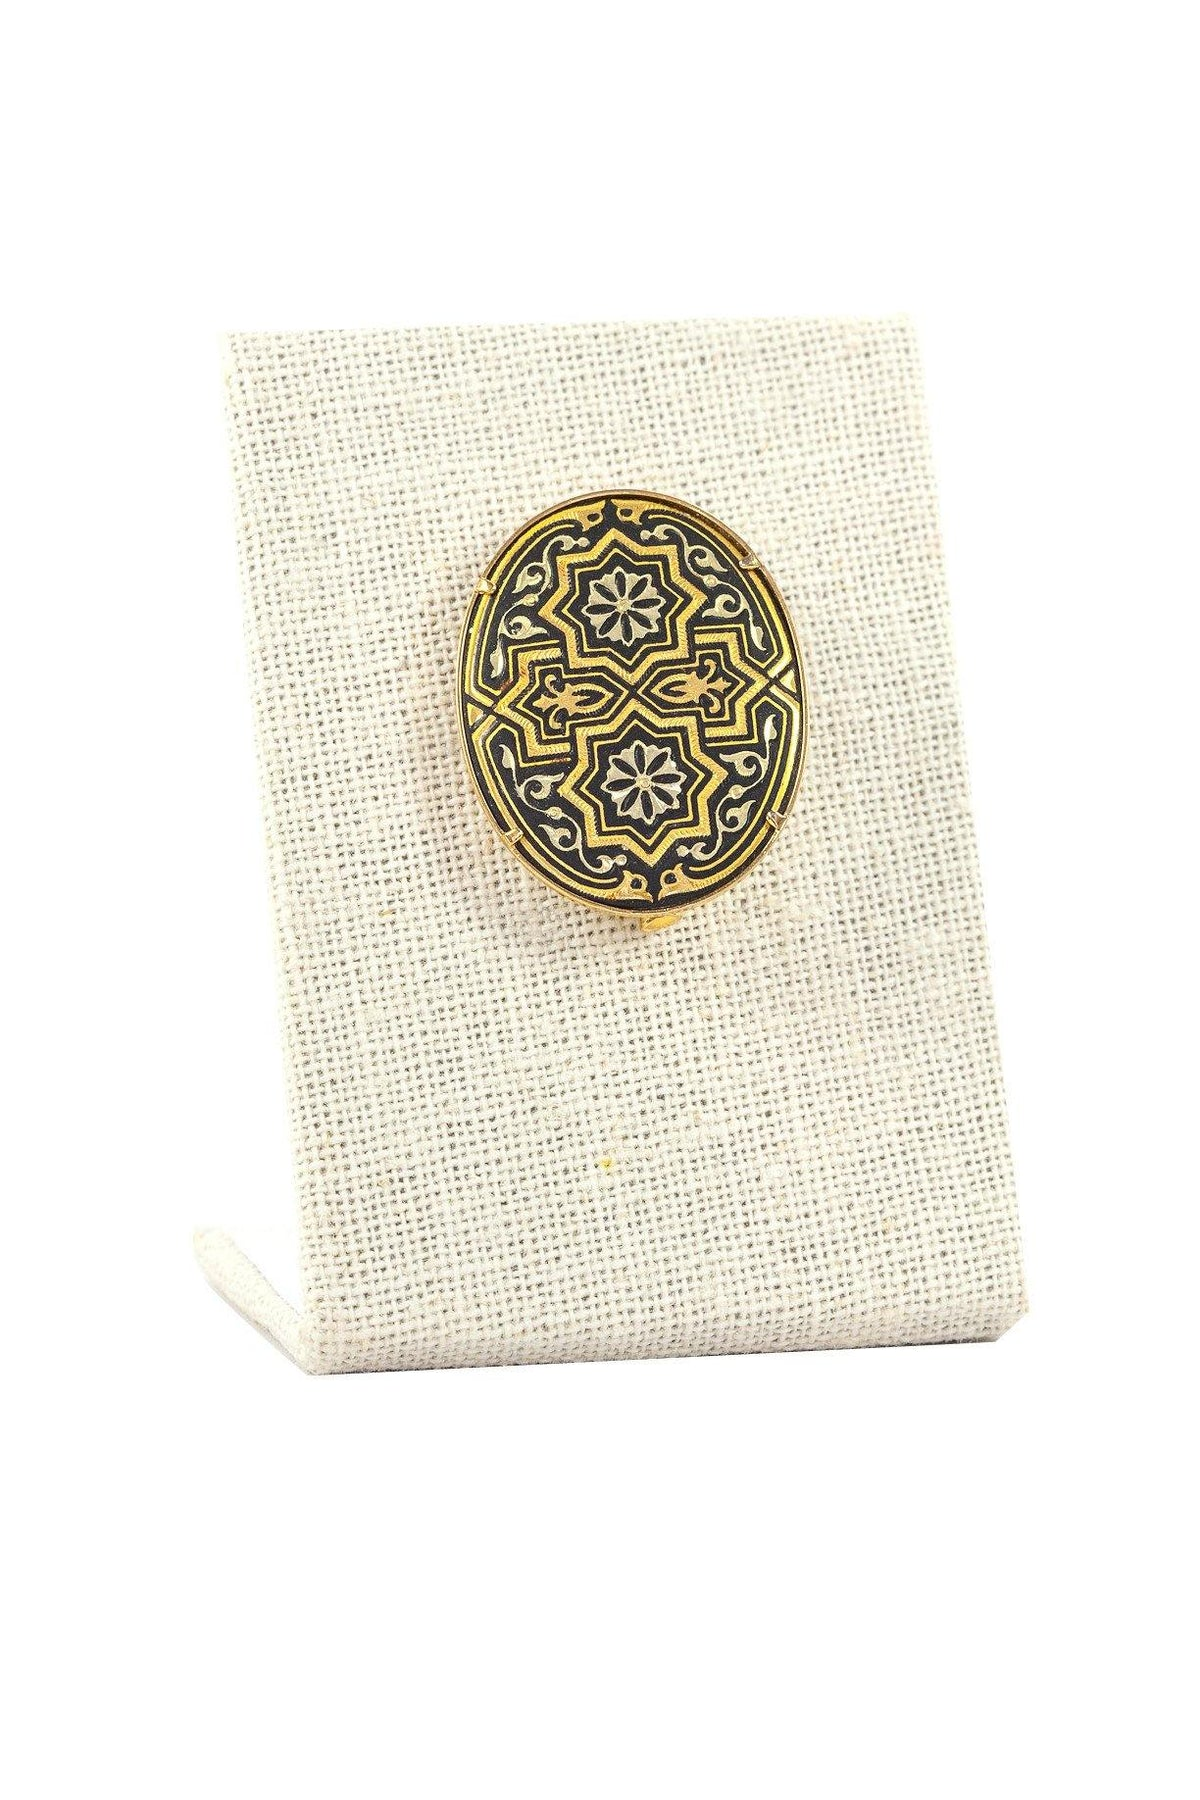 50's Vintage Damascene Brooch